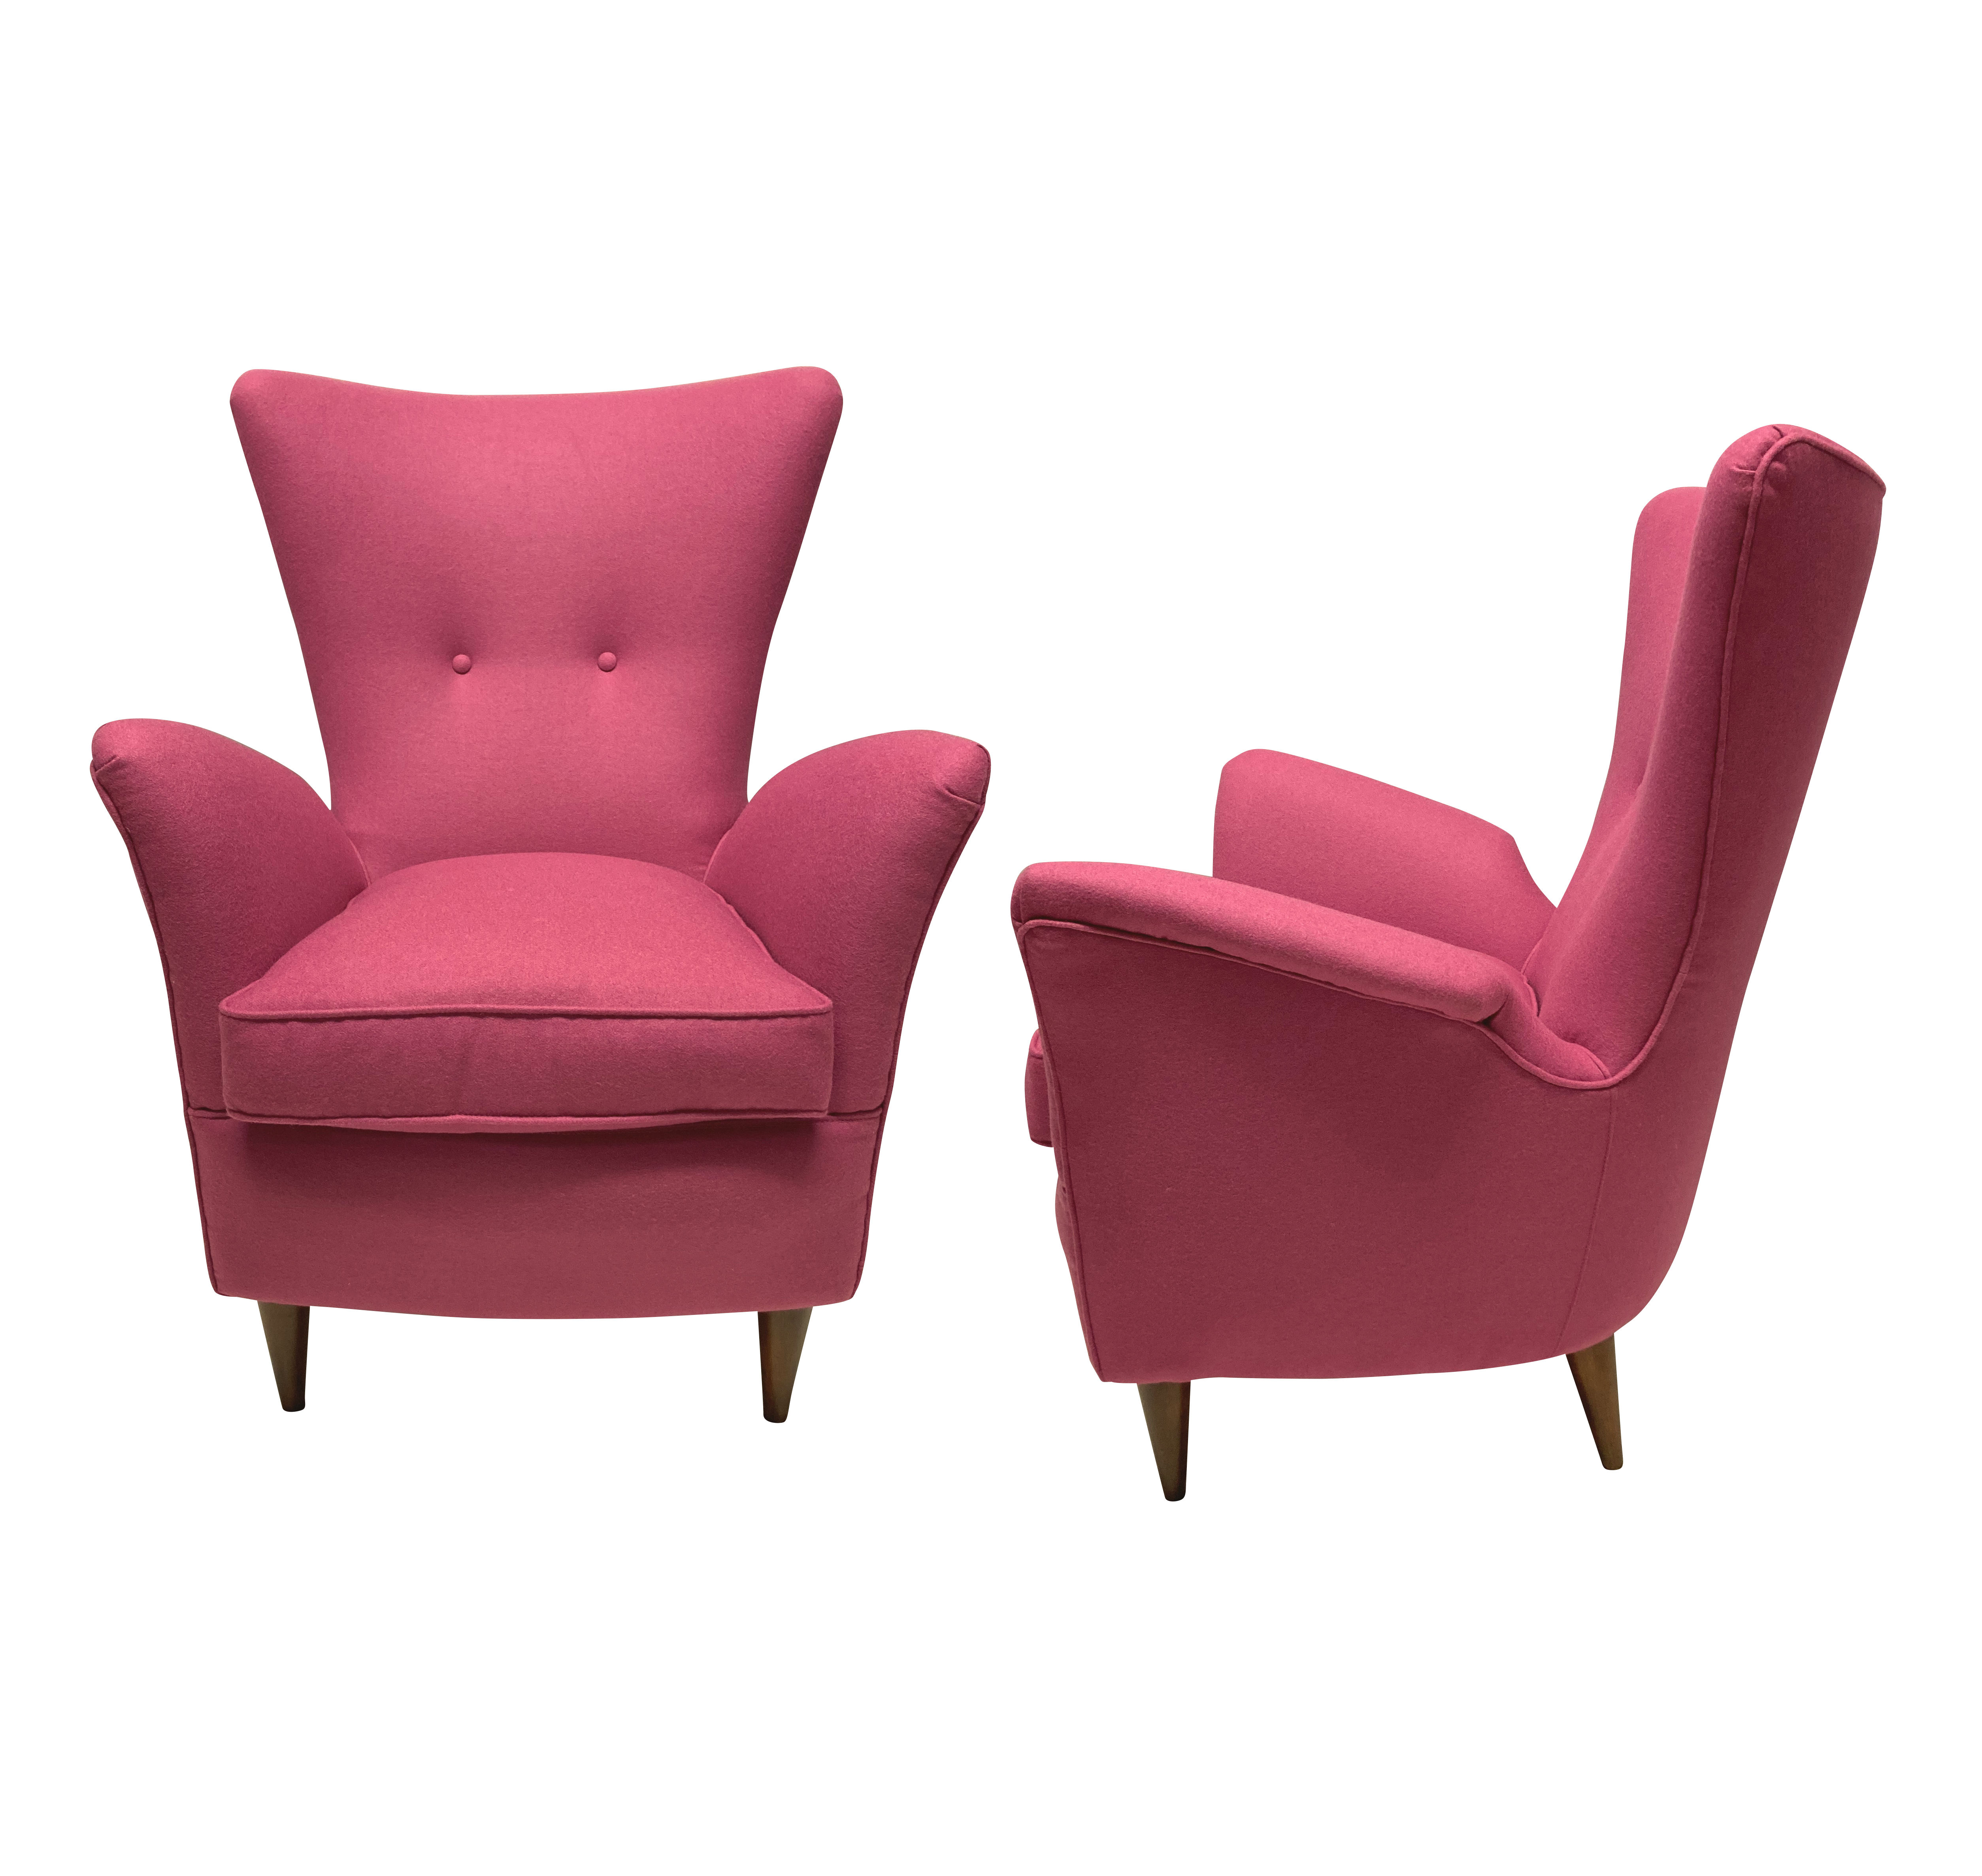 A PAIR OF ITALIAN ARMCHAIRS BY MELCHIORE BEGA